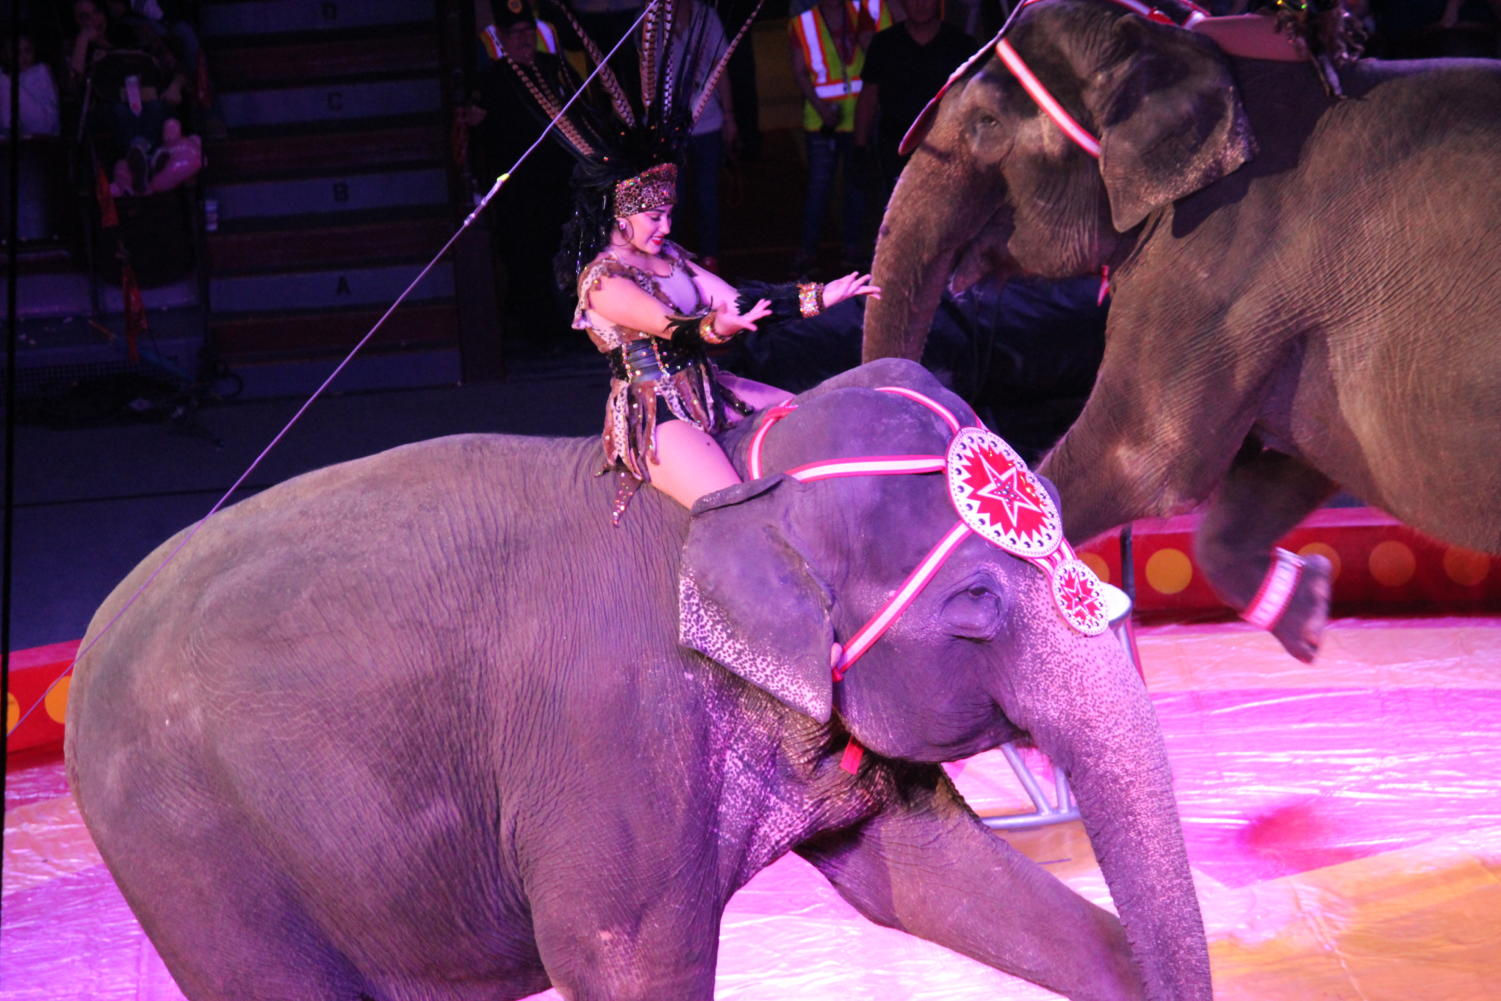 The Jaffa Shrine elephants perform at the circus on April 12!